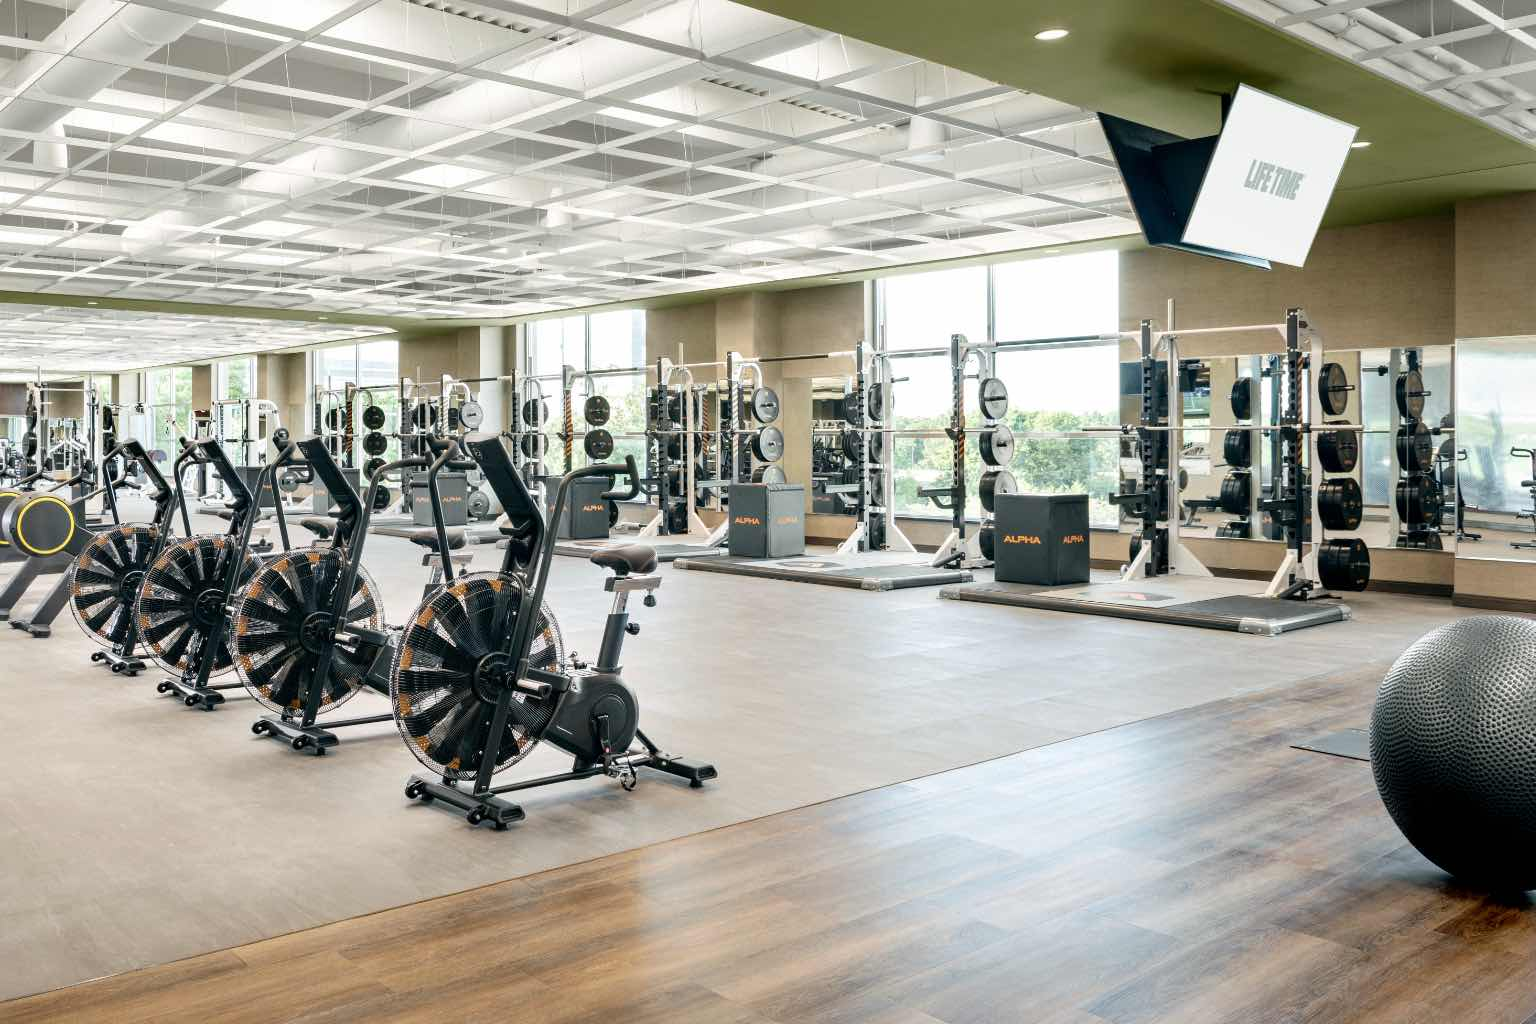 Fitness floor with weight racks and interior bikes